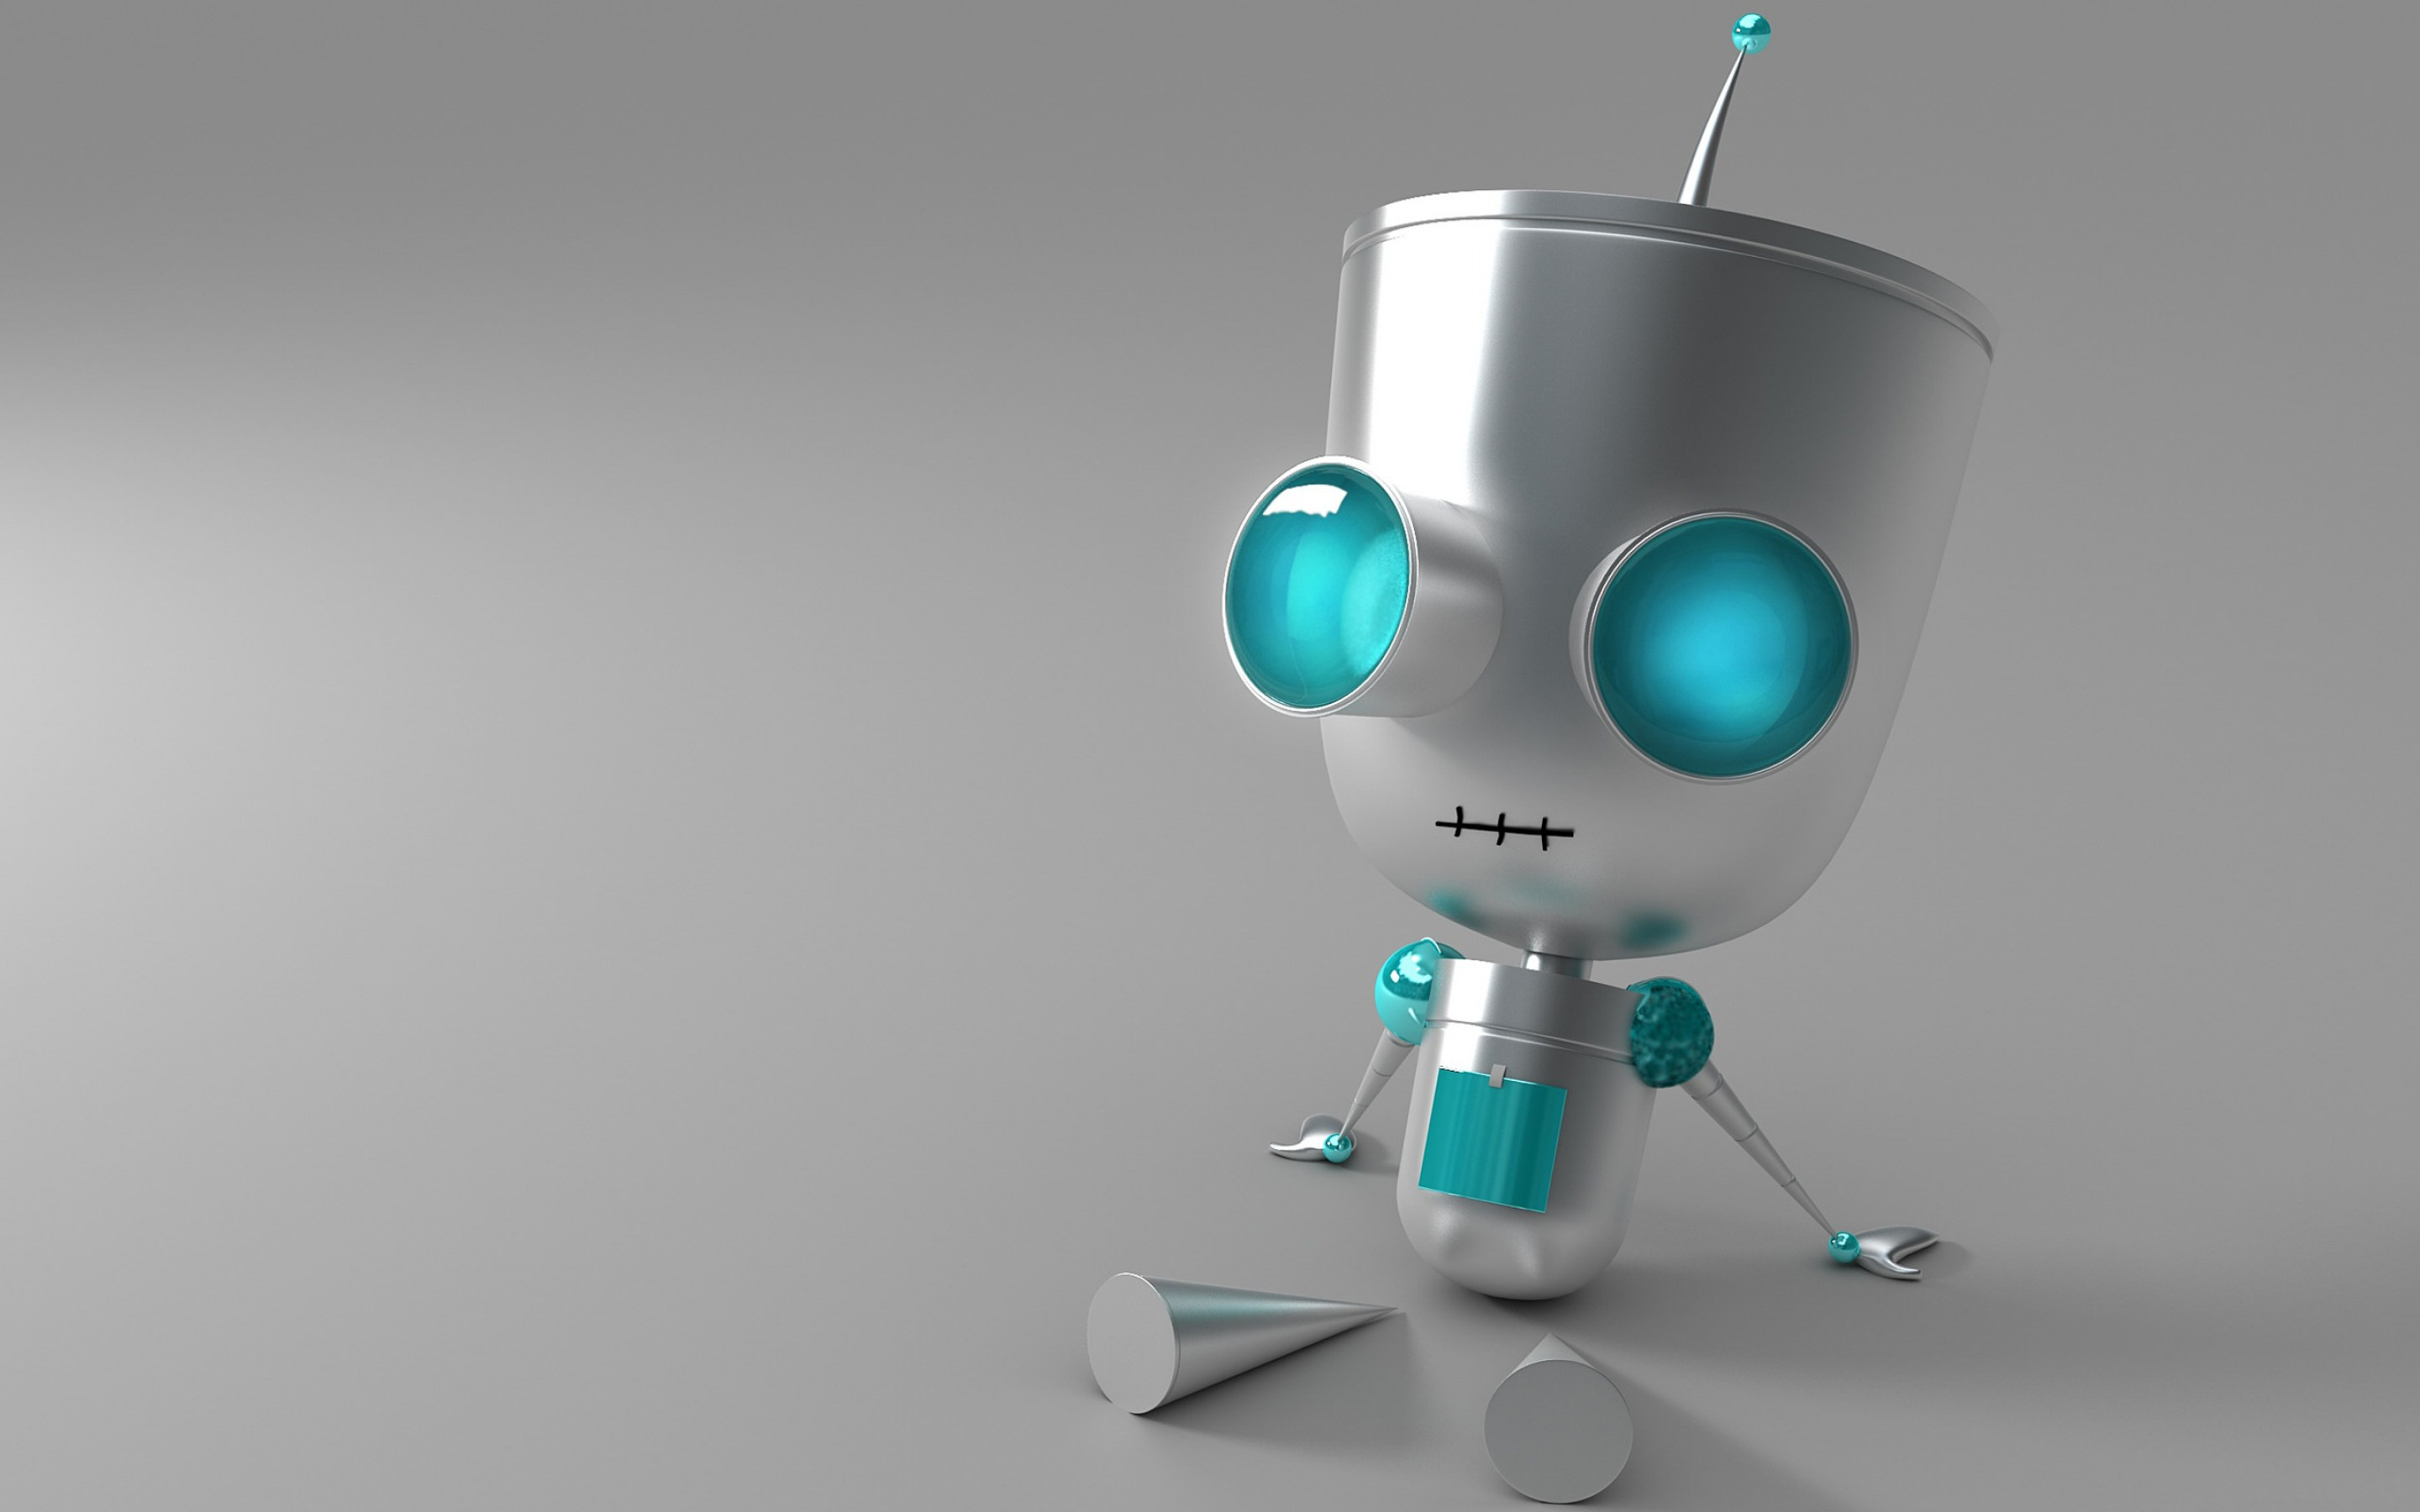 20 Hd Robot Wallpapers